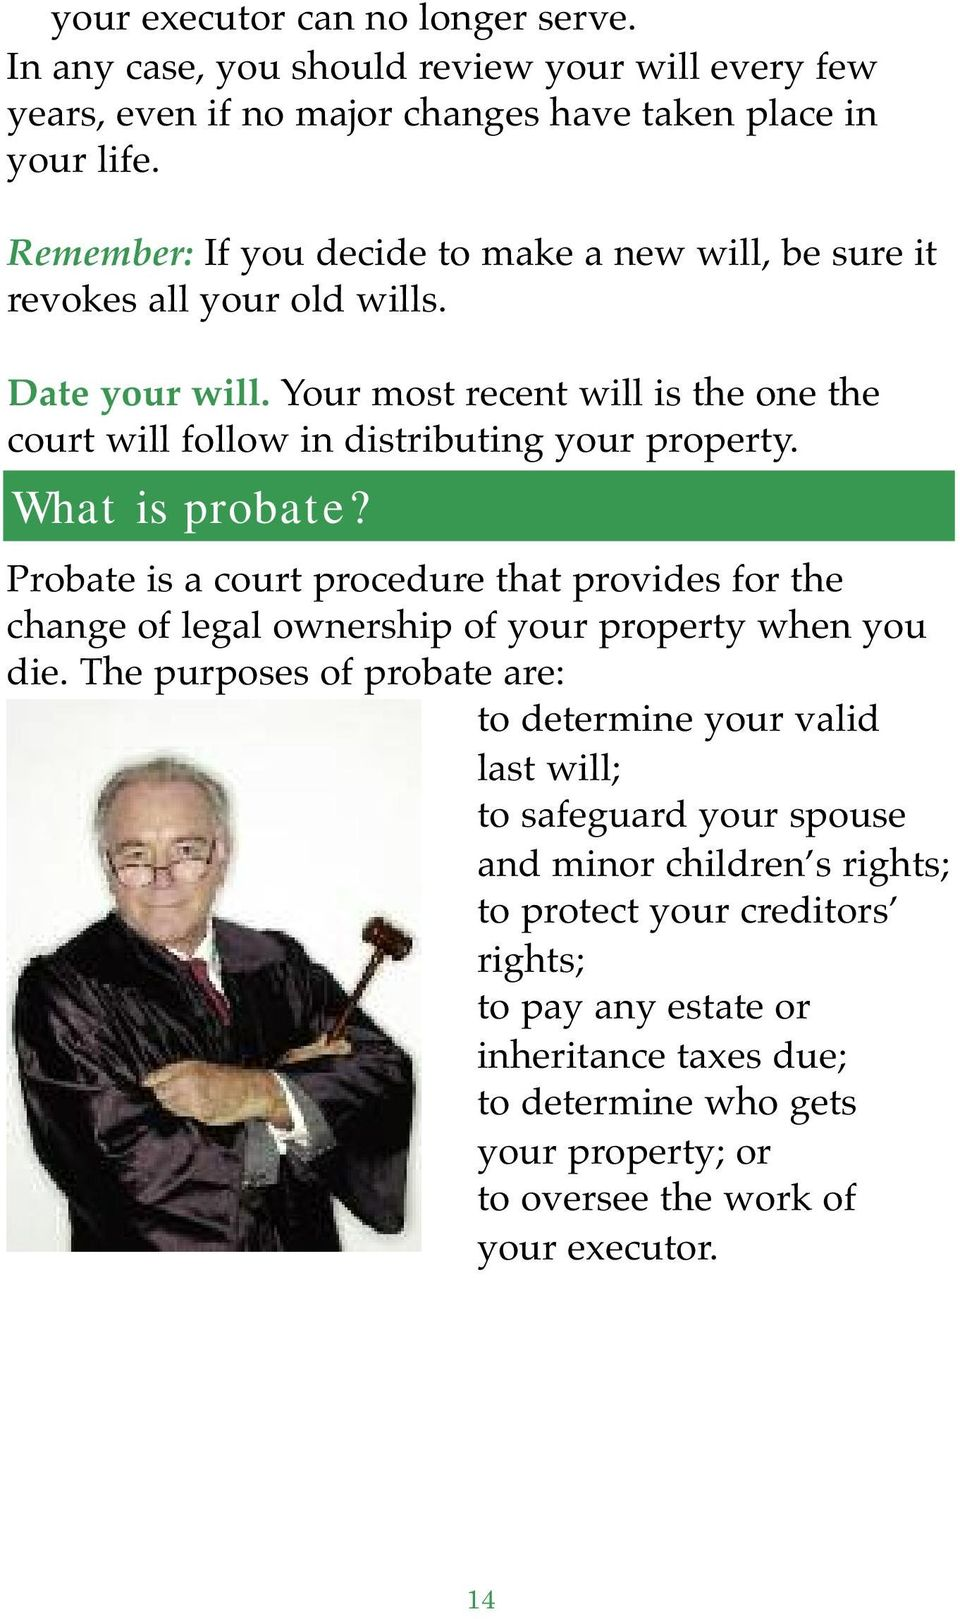 What is probate? Probate is a court procedure that provides for the change of legal ownership of your property when you die.